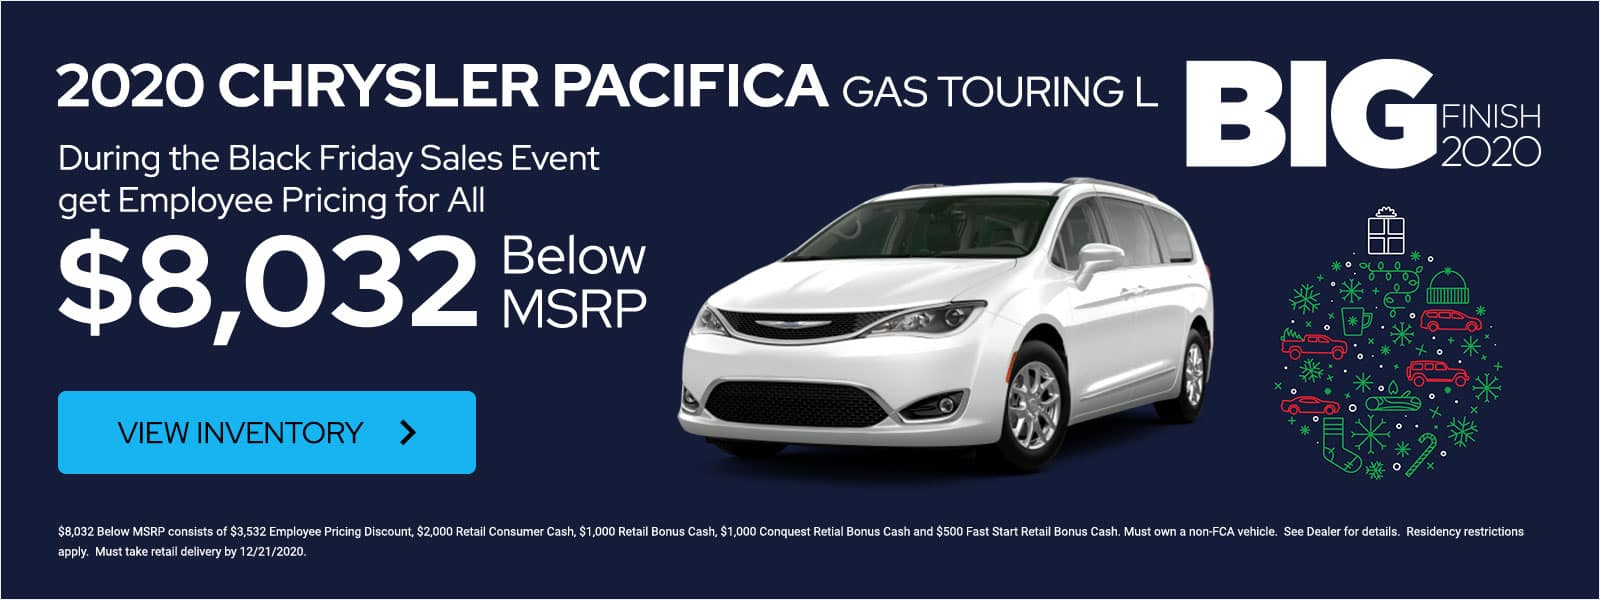 MABC_Banners_1600x600_2020-12_509913_20-Chrysler-Pacifica-Gas